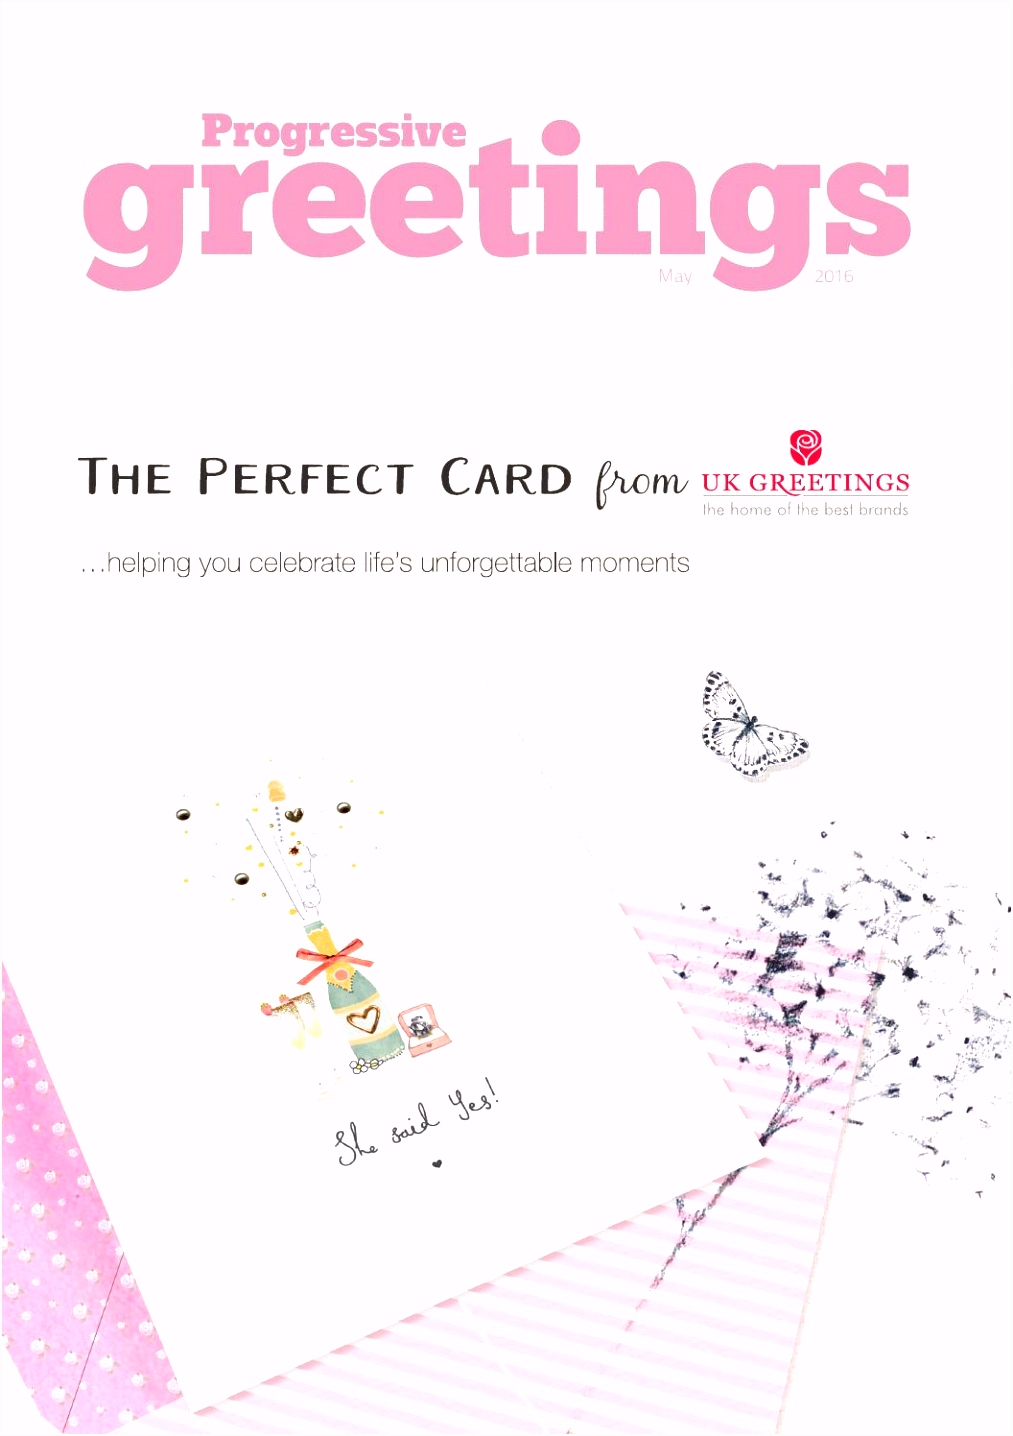 Progressive Greetings May 2016 by Max Publishing issuu